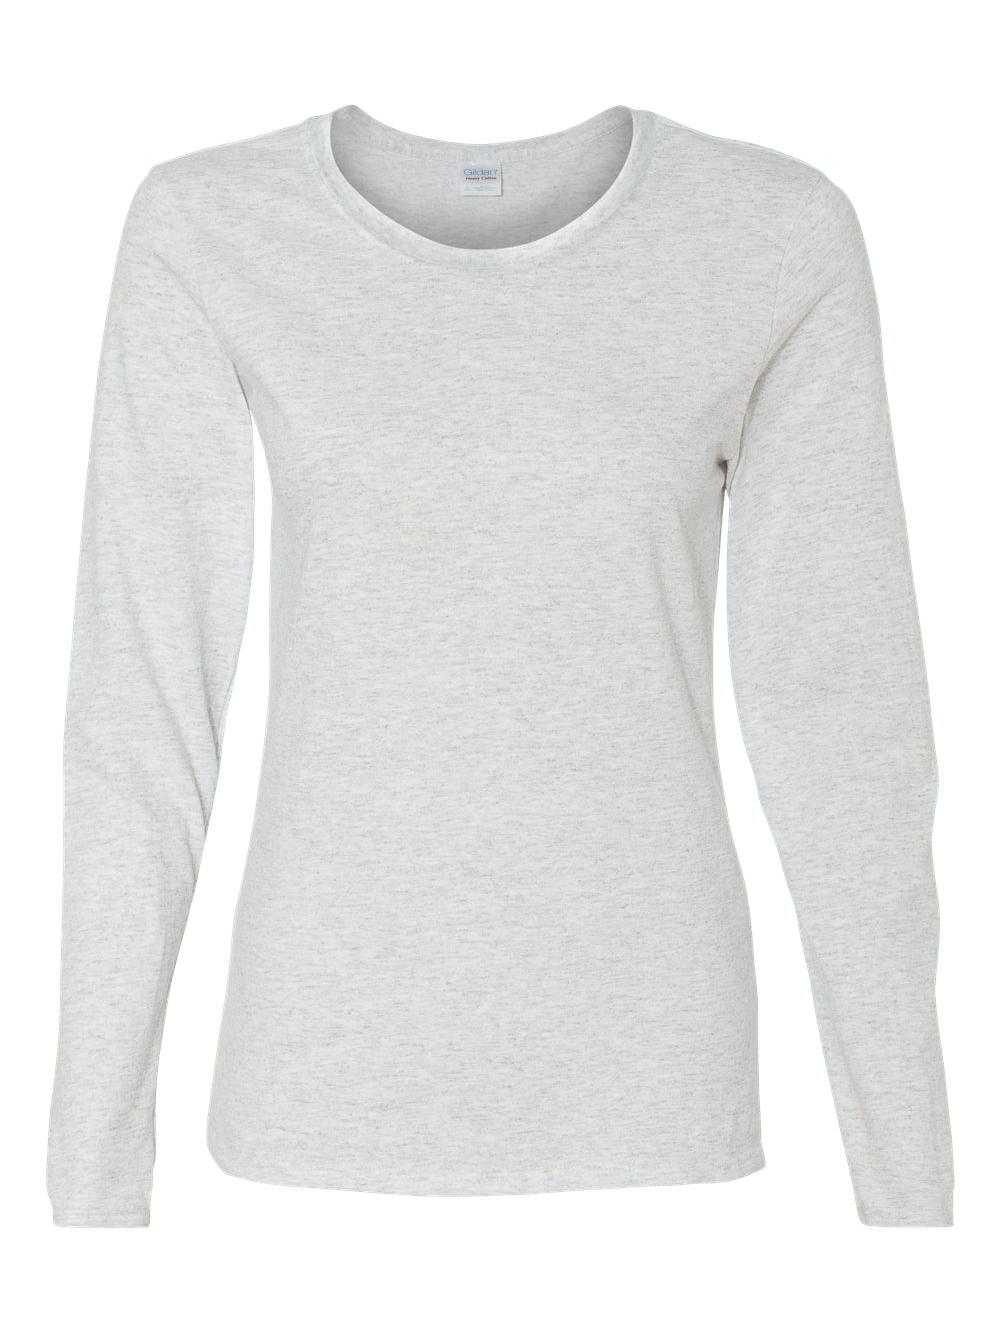 Gildan-Heavy-Cotton-Women-039-s-Long-Sleeve-T-Shirt-5400L thumbnail 3